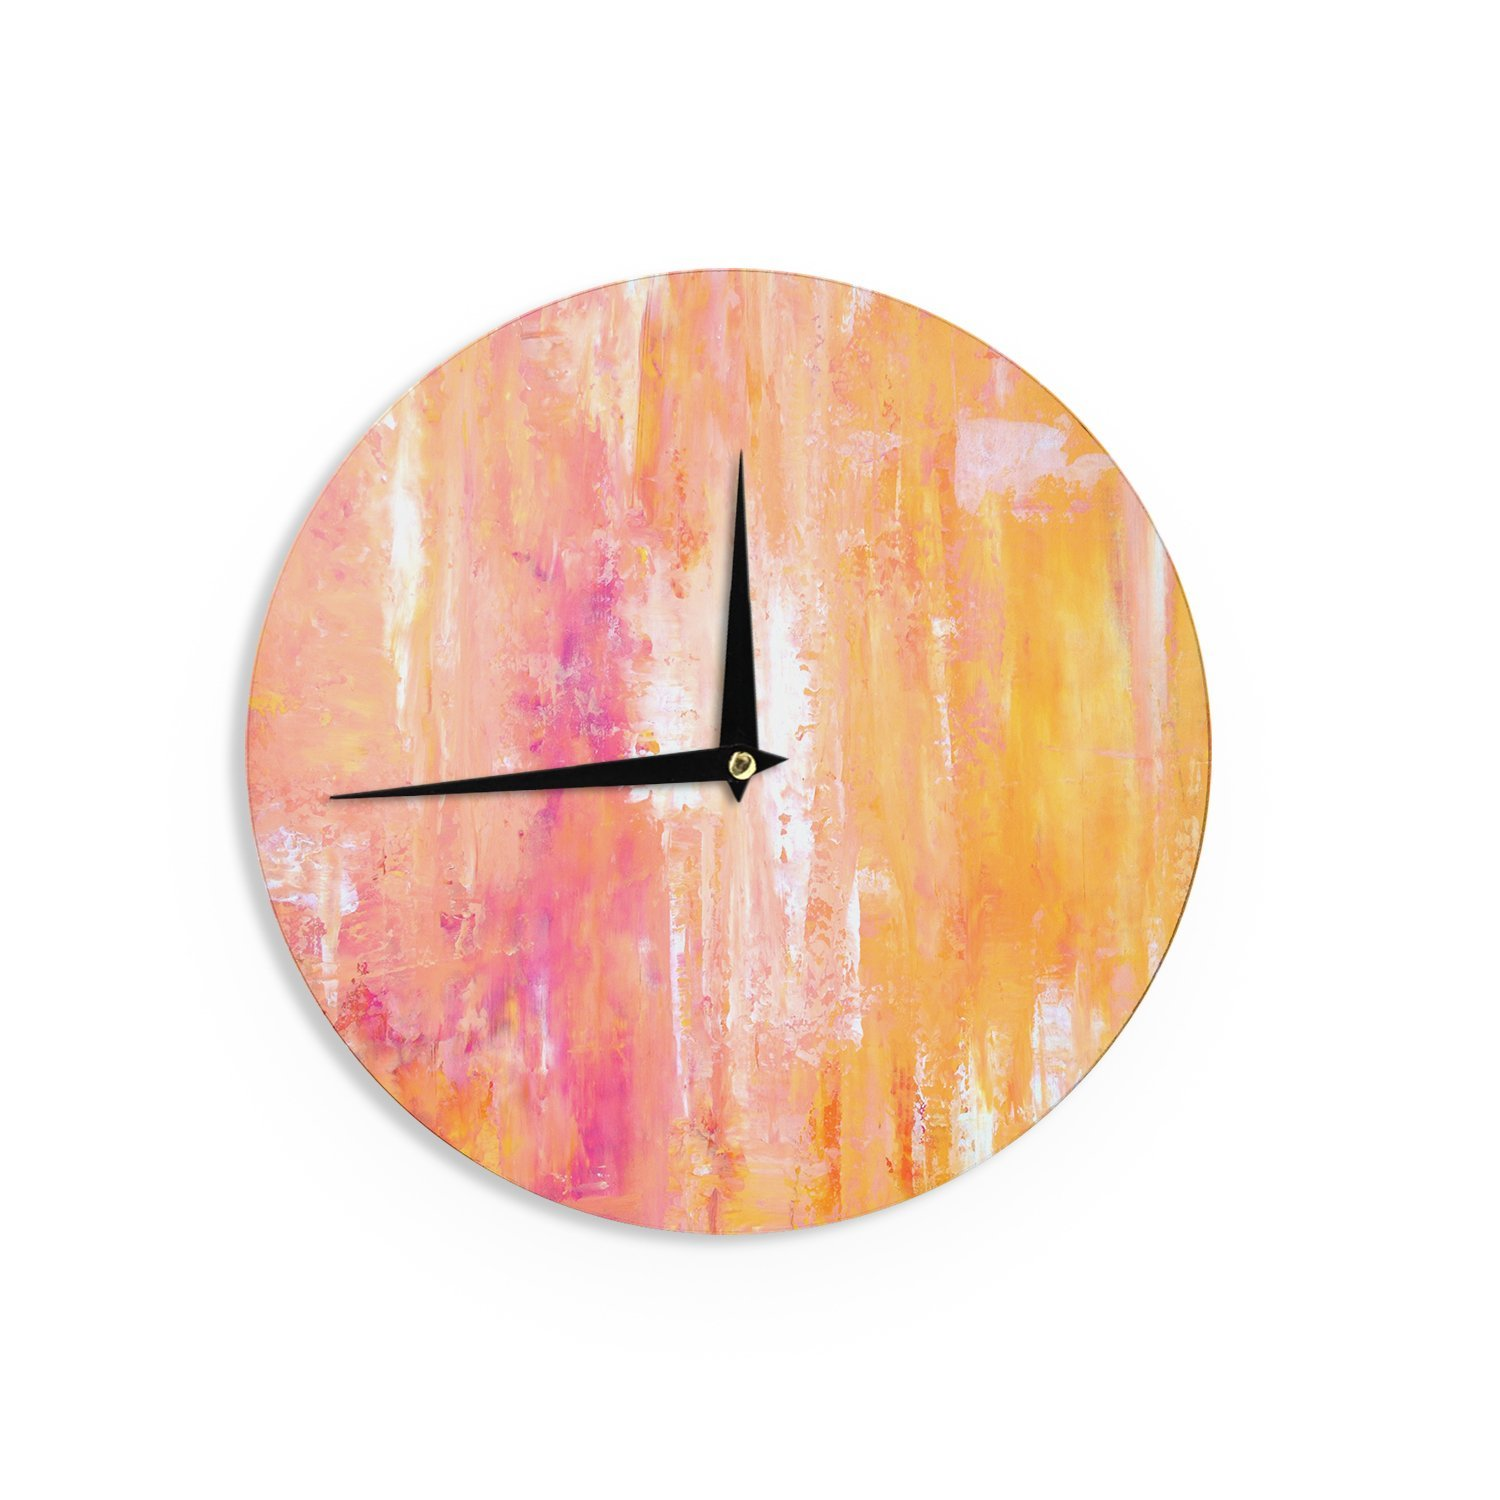 Kess InHouse CarolLynn TICE Girls Night Out Yellow Wall Clock 12 Diameter